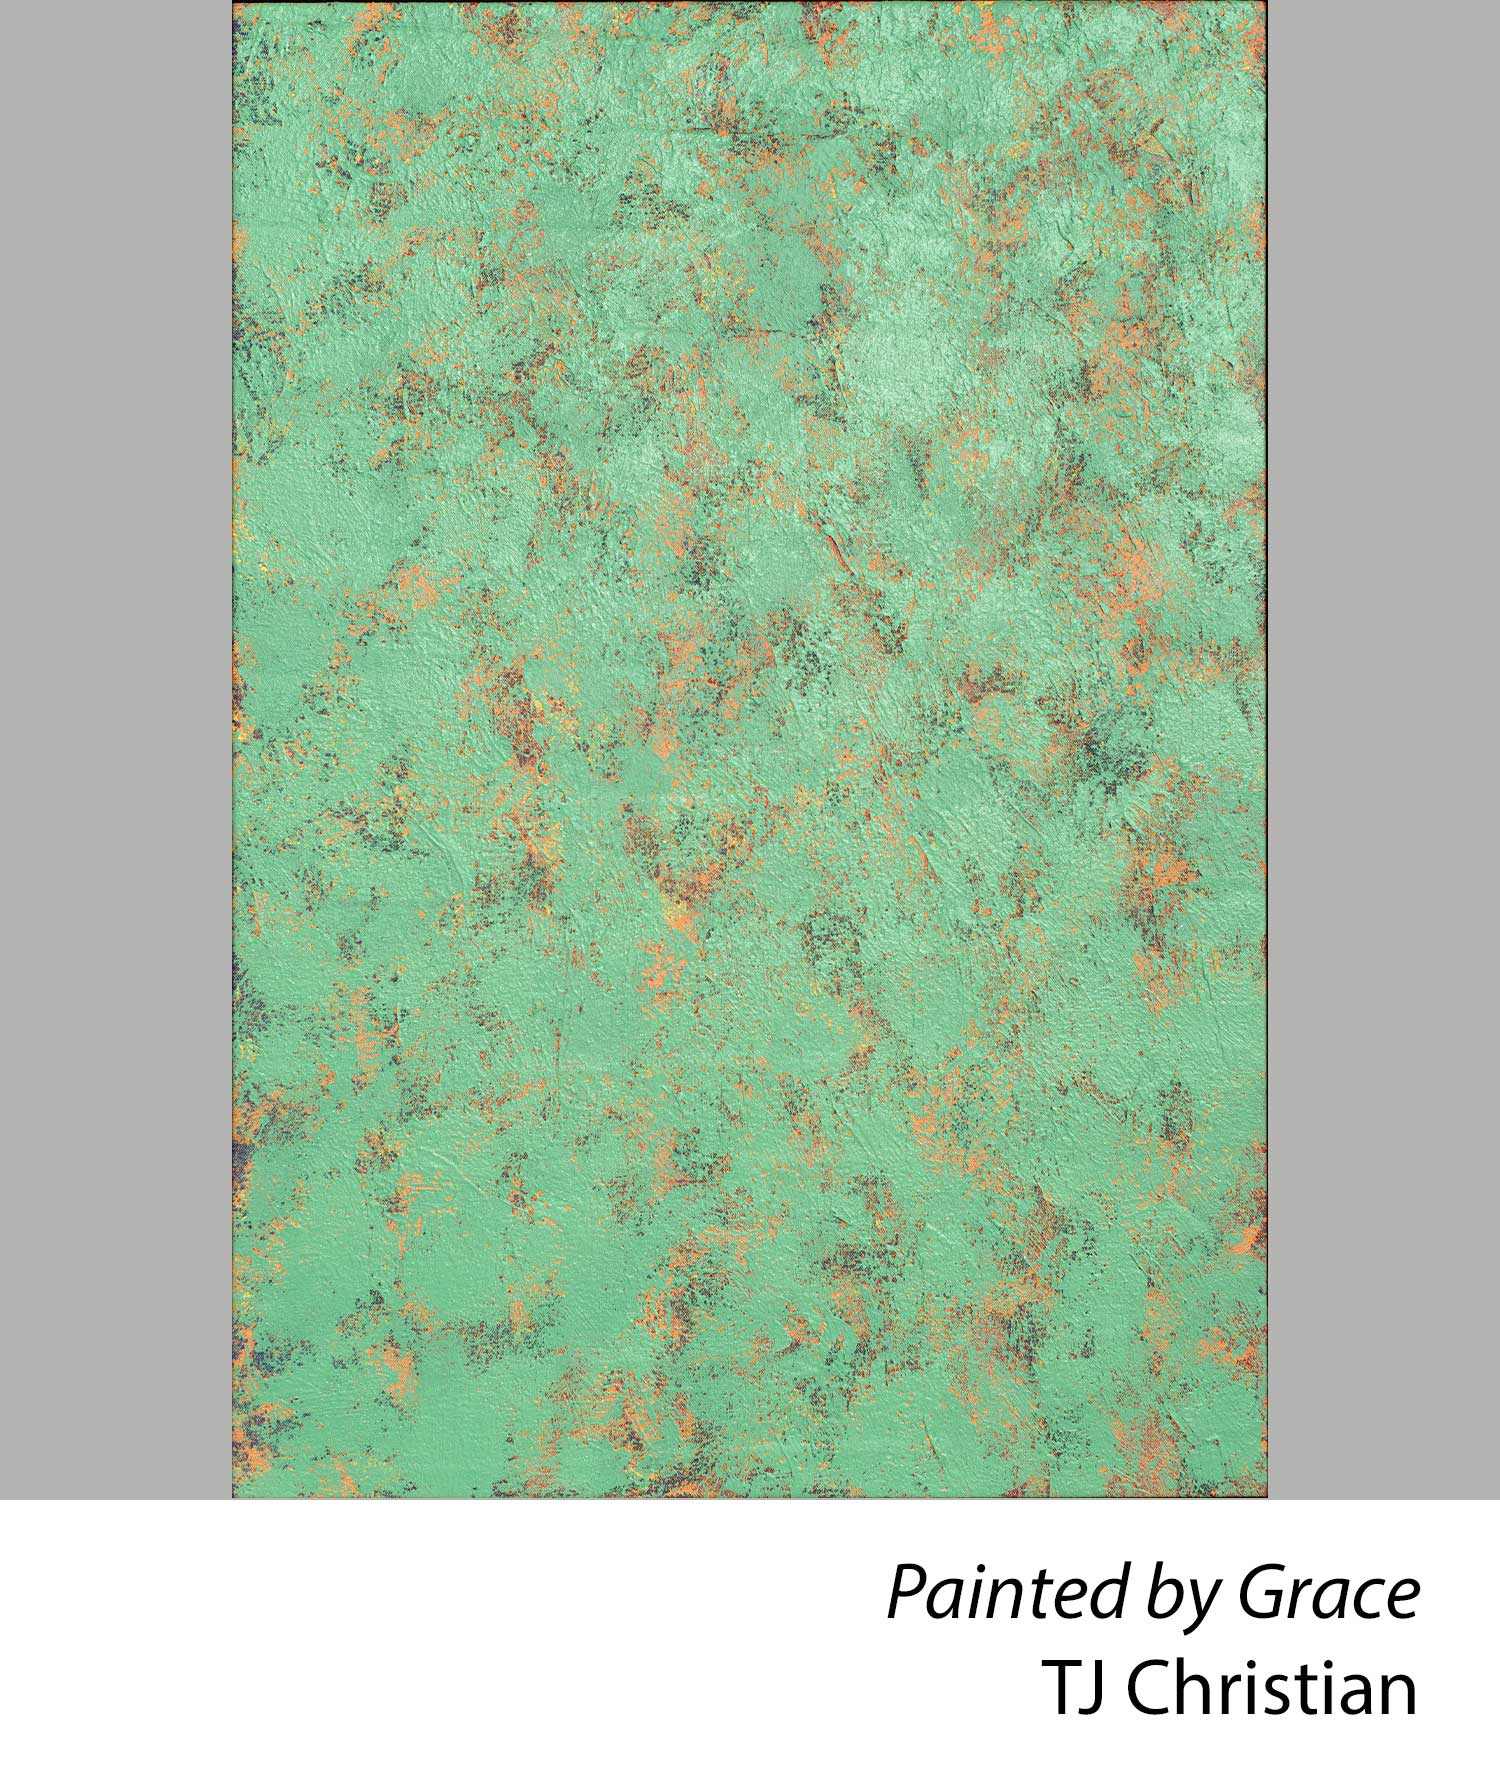 Painted by Grace by TJ Christian